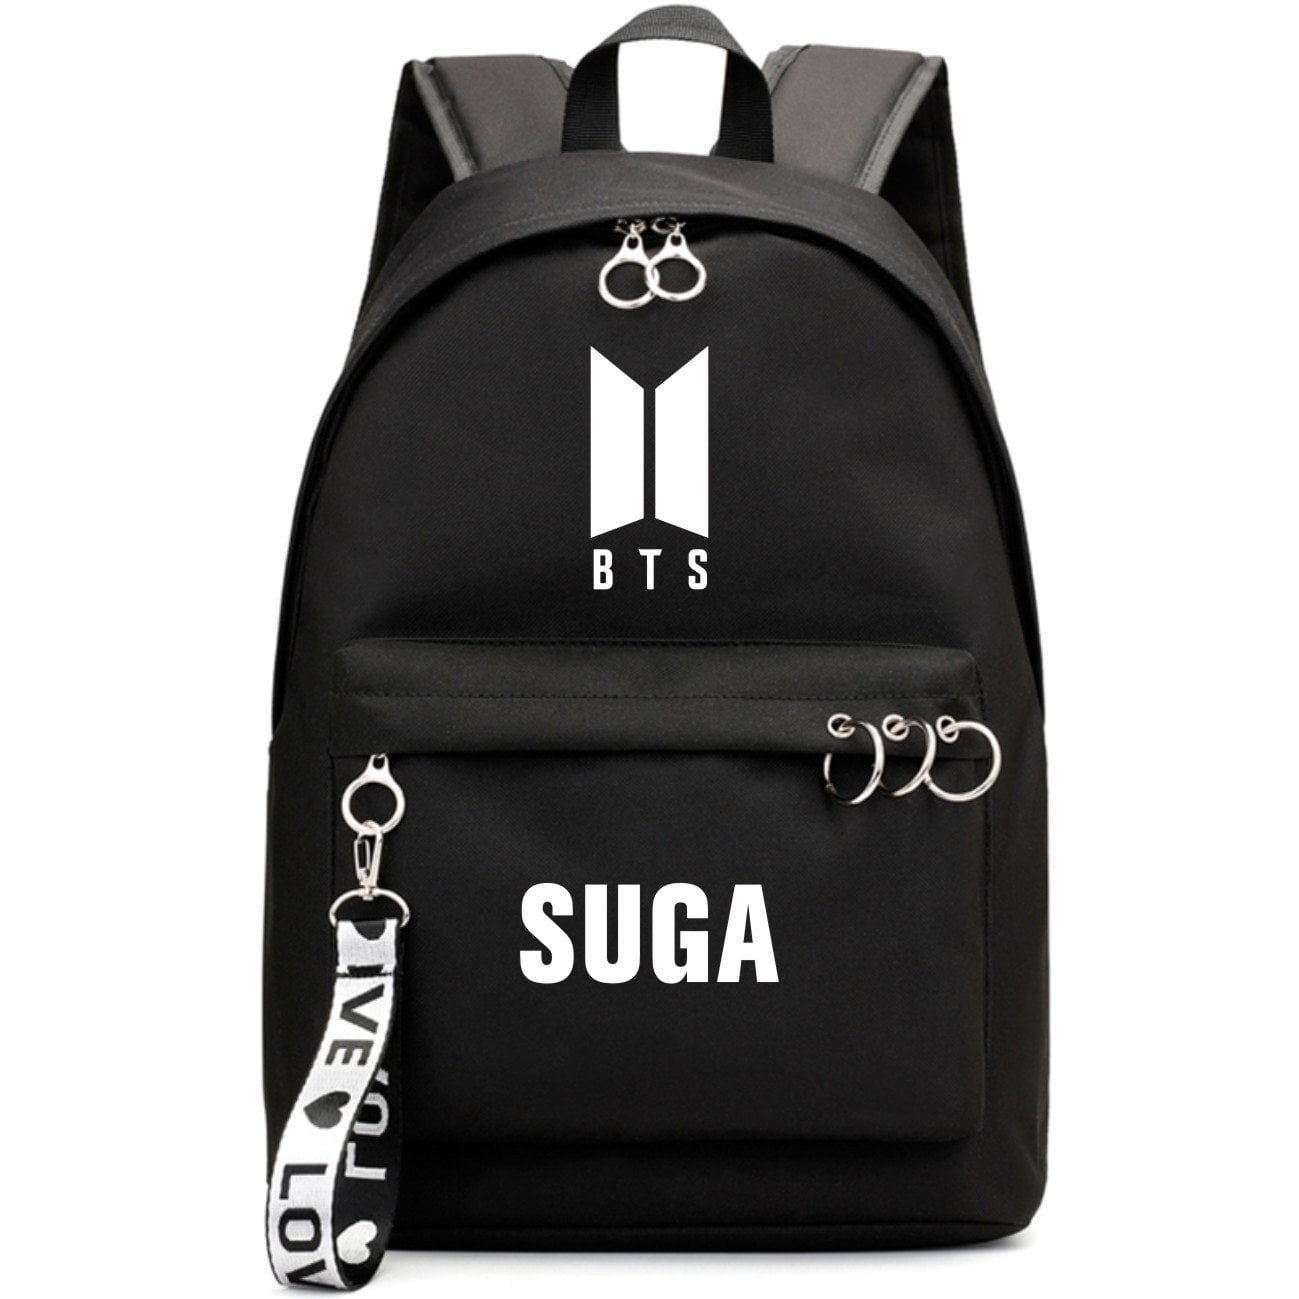 BTS New Logo Large Capacity Backpack / School Bag with Silver Rings in 2 Colours  583071224455#3925845045046